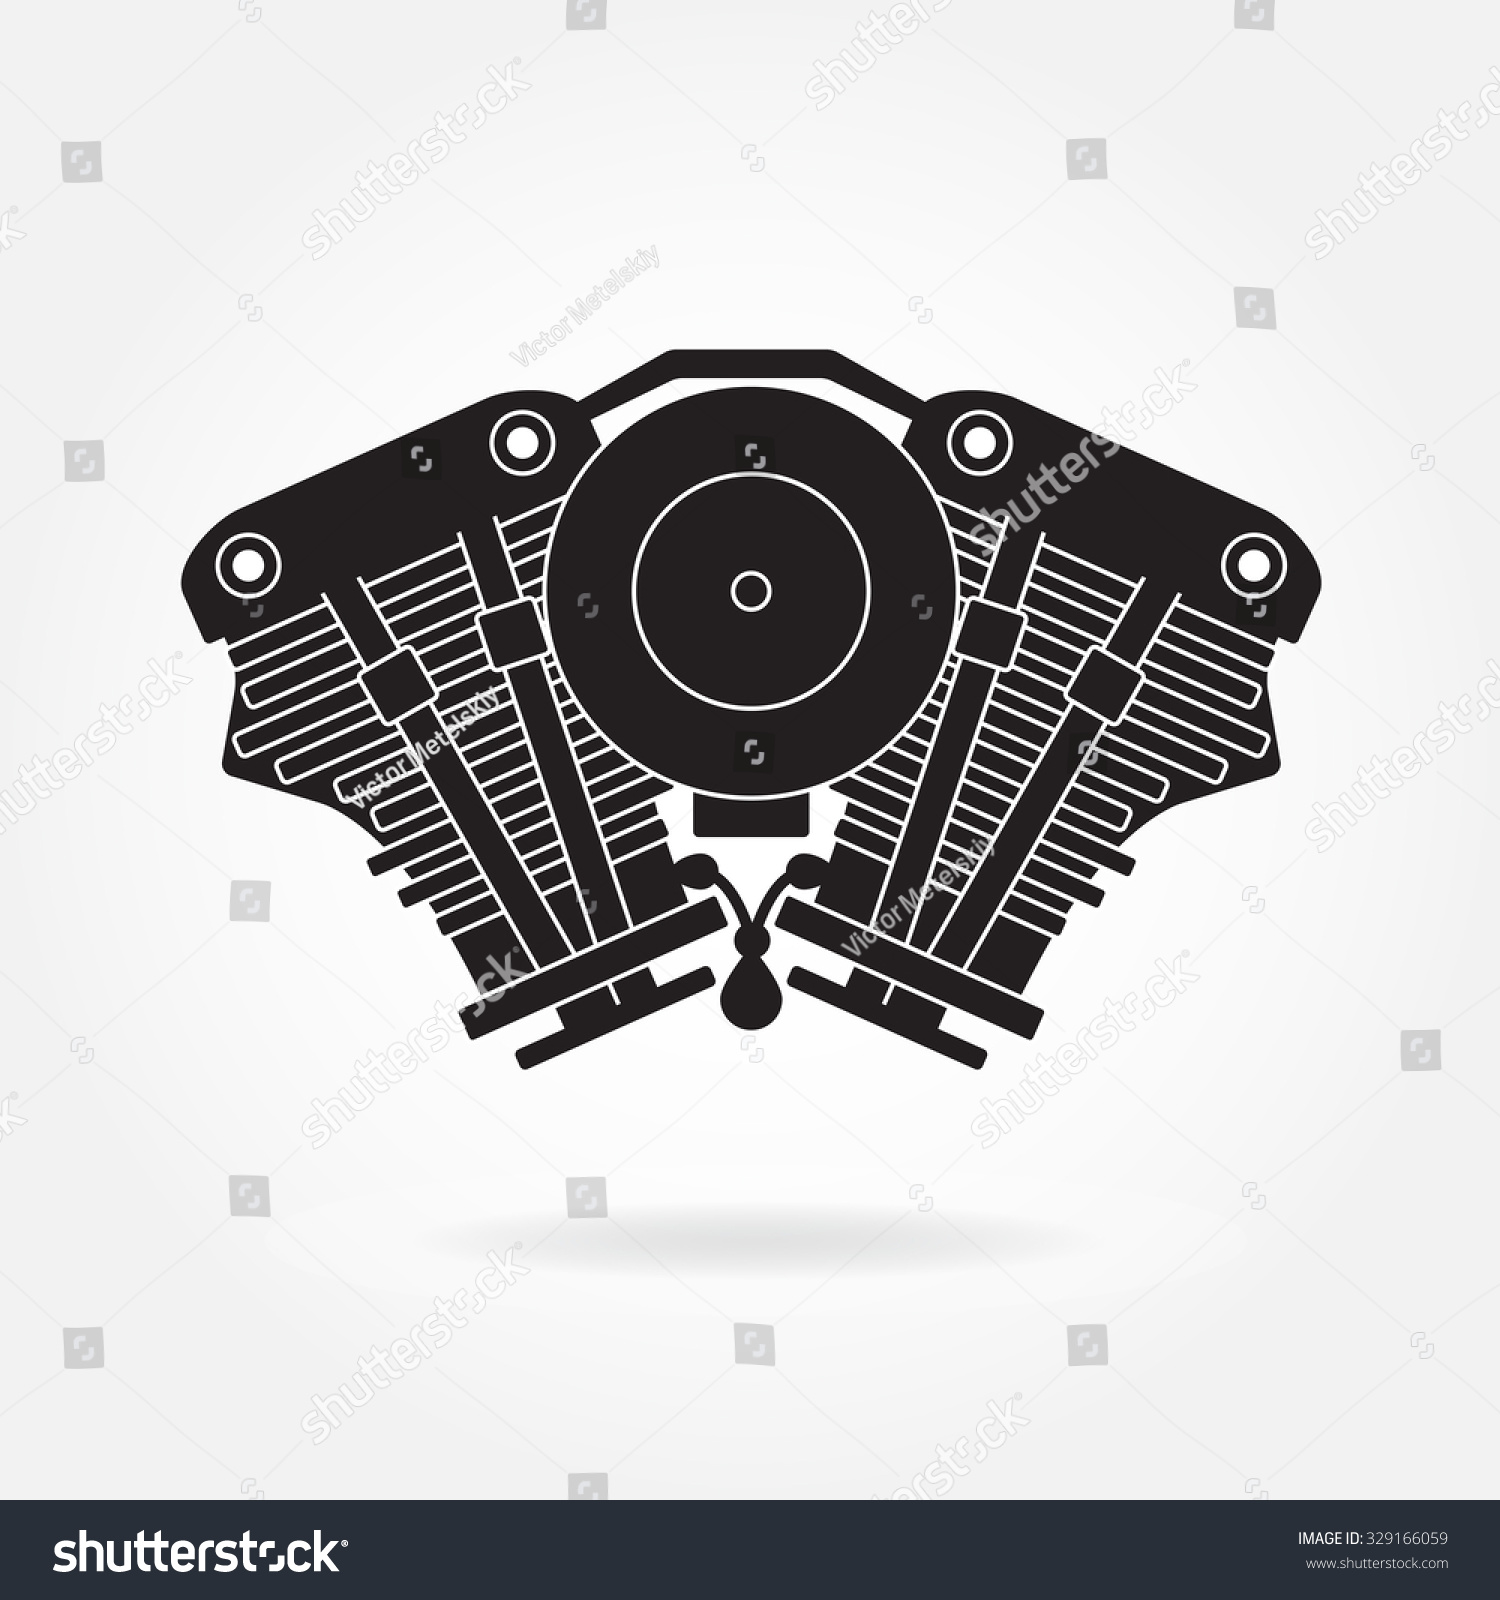 Engine Symbol Car Motorcycle Motor Silhouette Stock Vector 329166059 ...